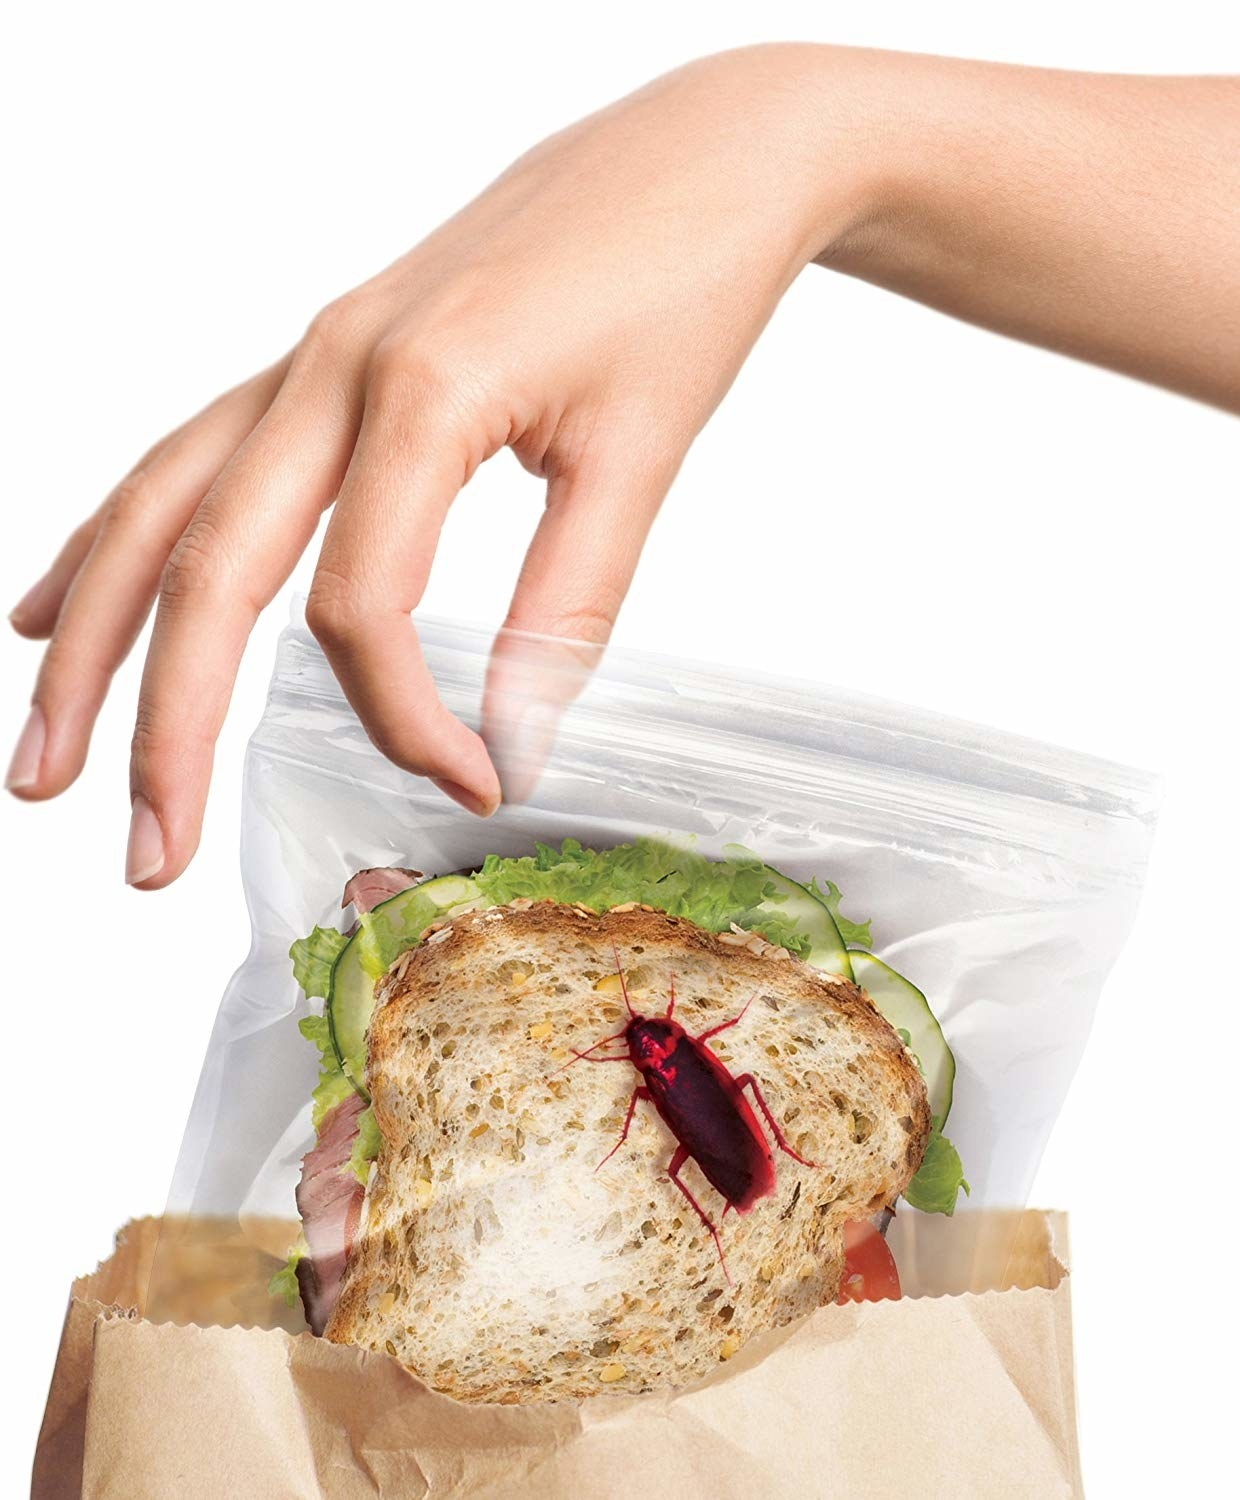 plastic sandwich bag with a cockroach image on it